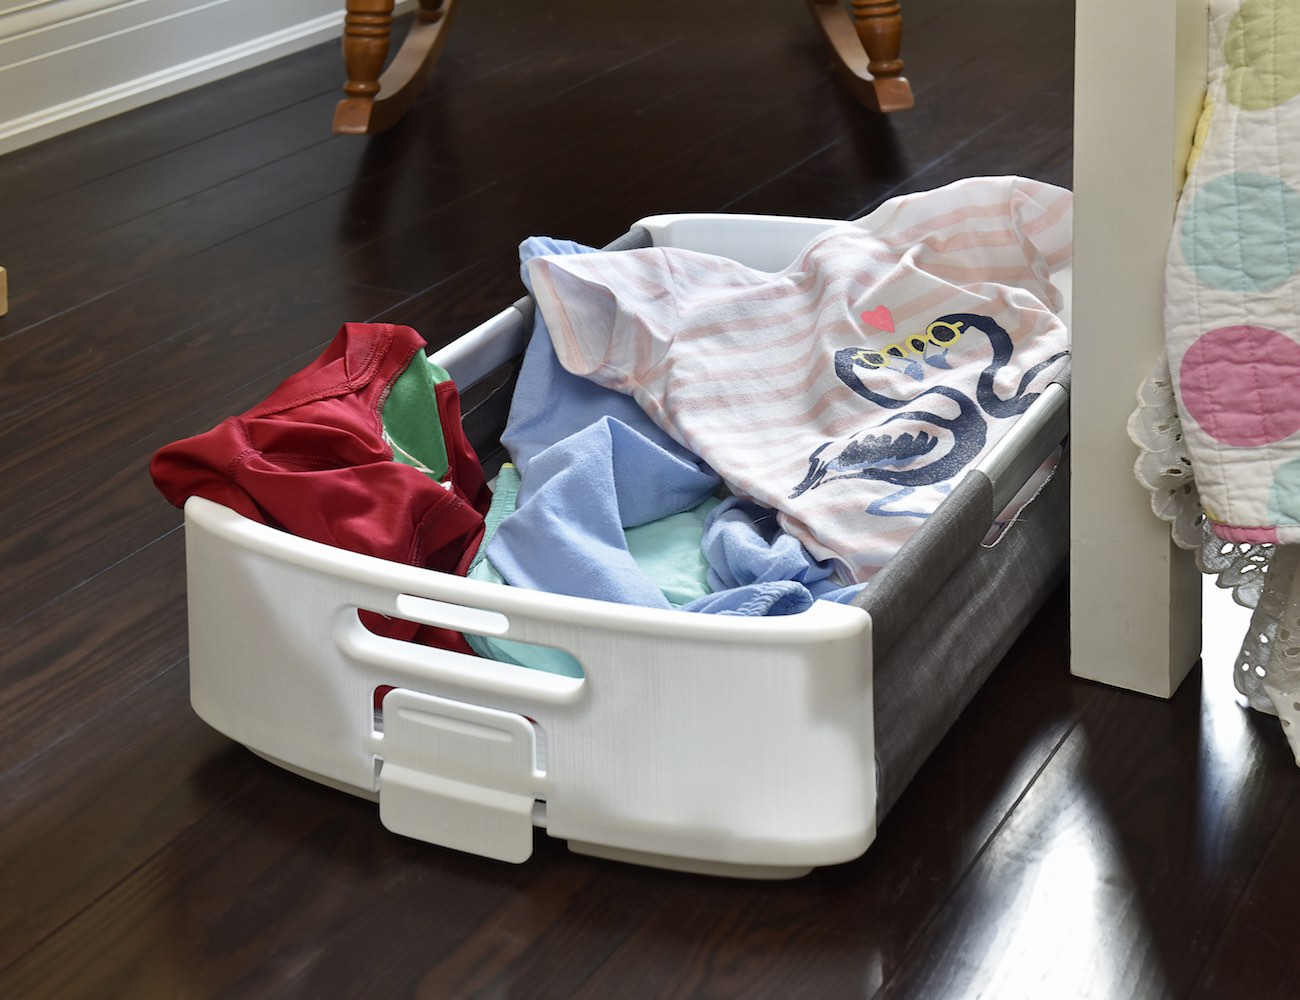 CLOZE Basket – Reconfigurable Laundry Basket